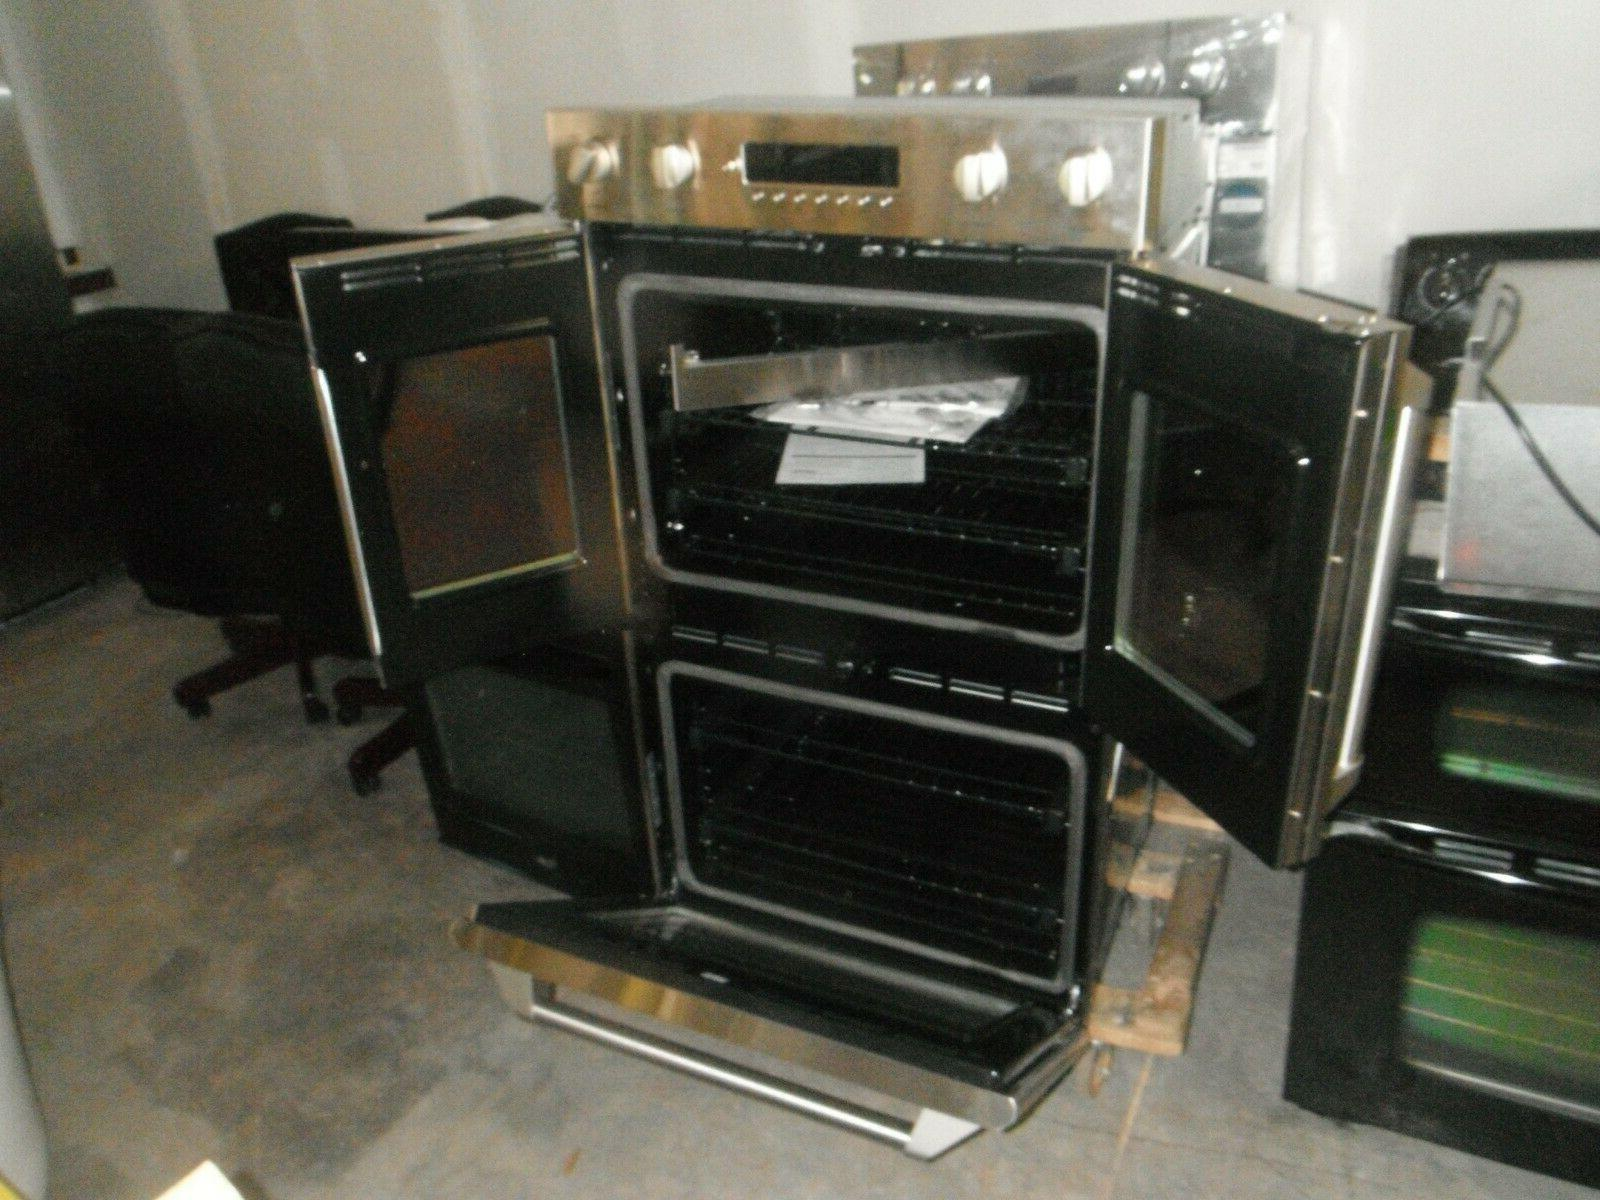 G.E. Double French Oven Model